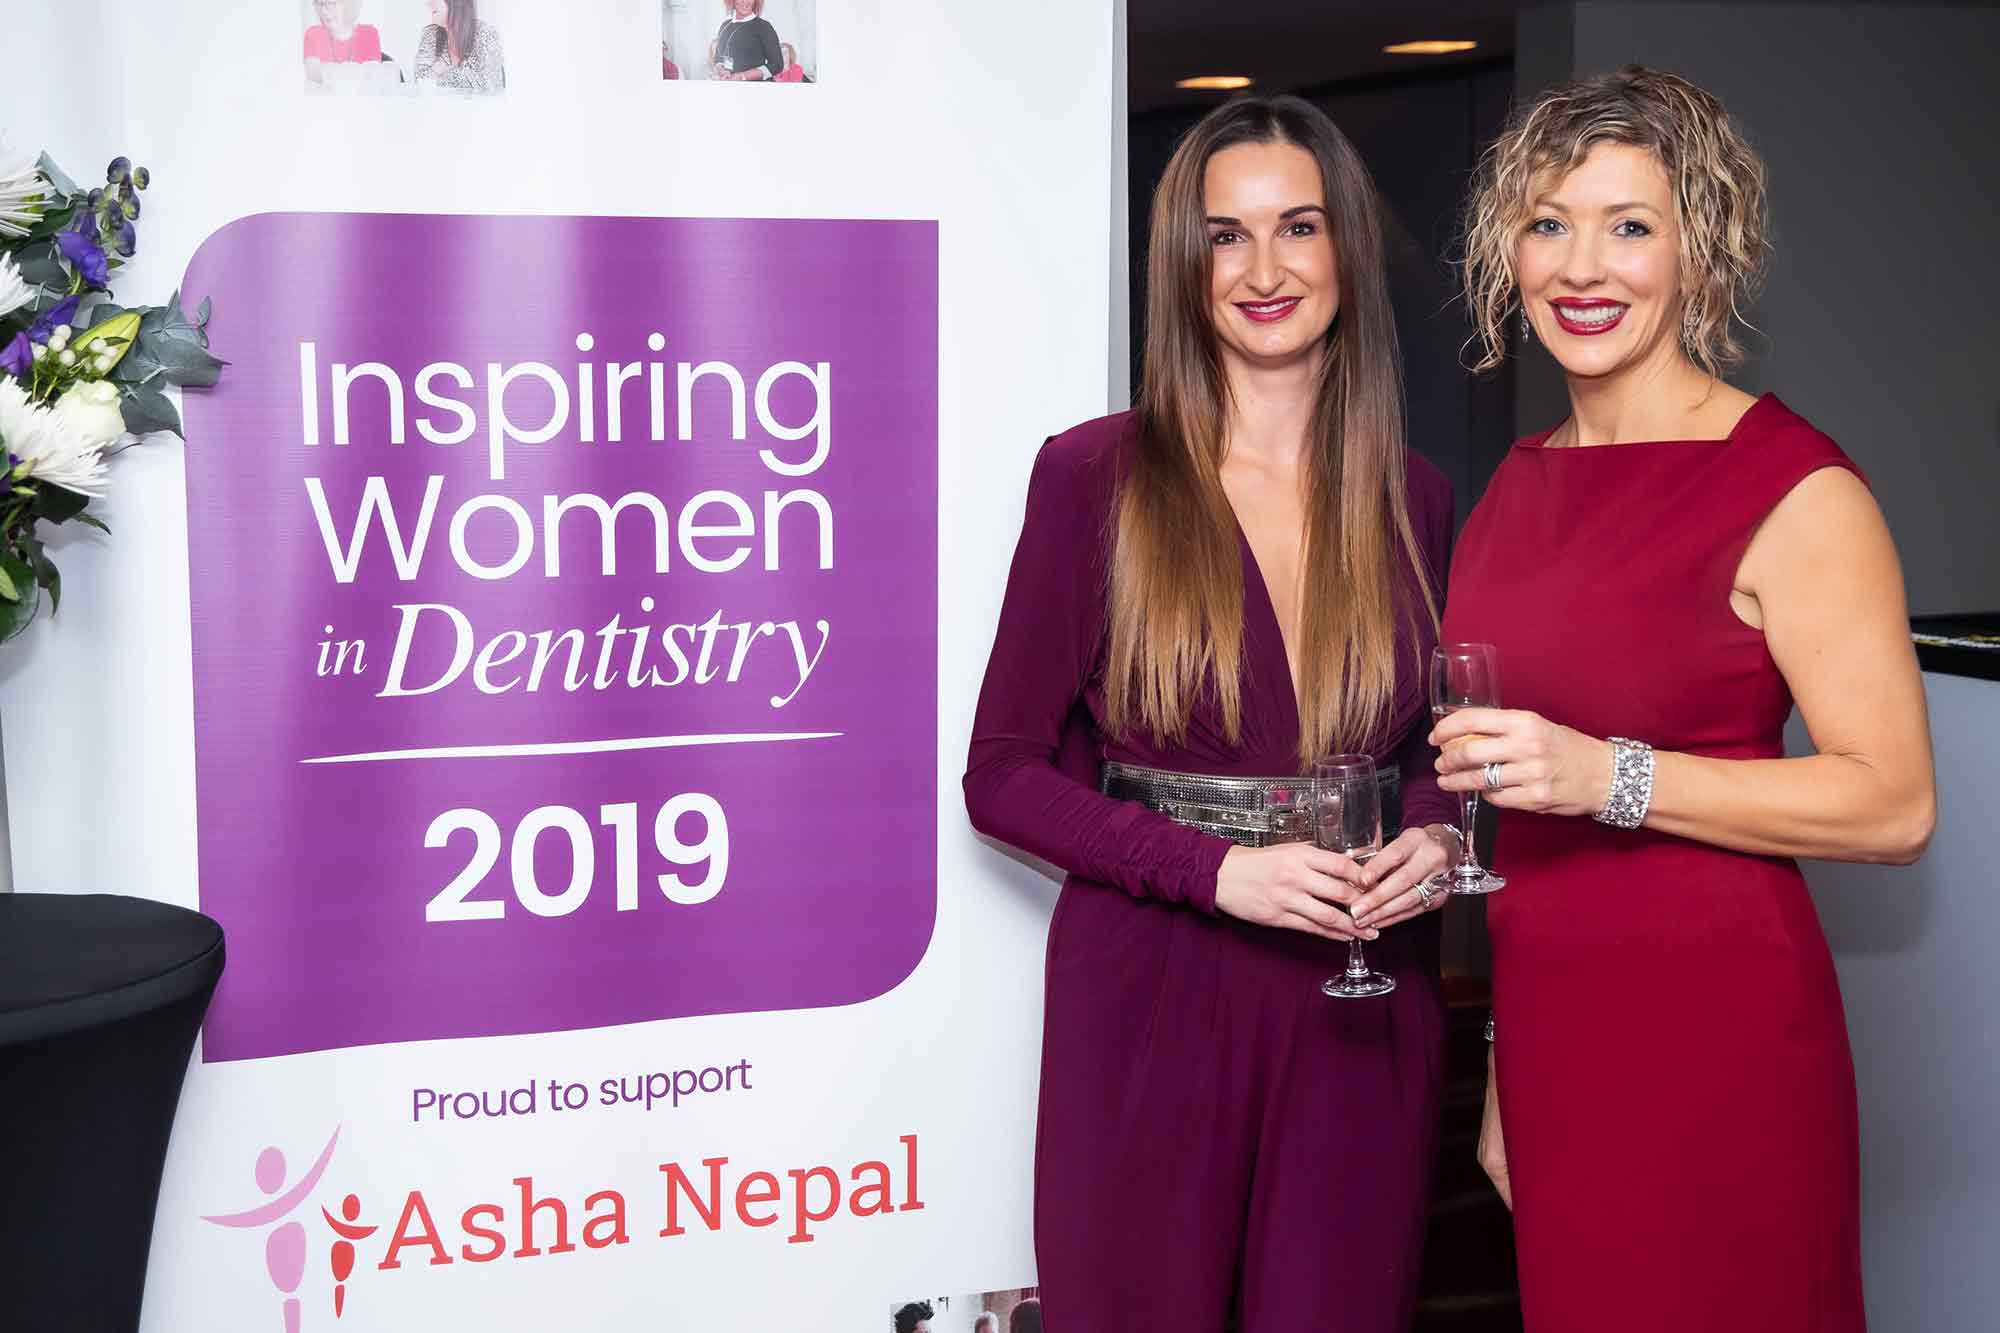 Martina Hodgson and Andrea Ubhi at the Inspiring Women in Dentistry conference